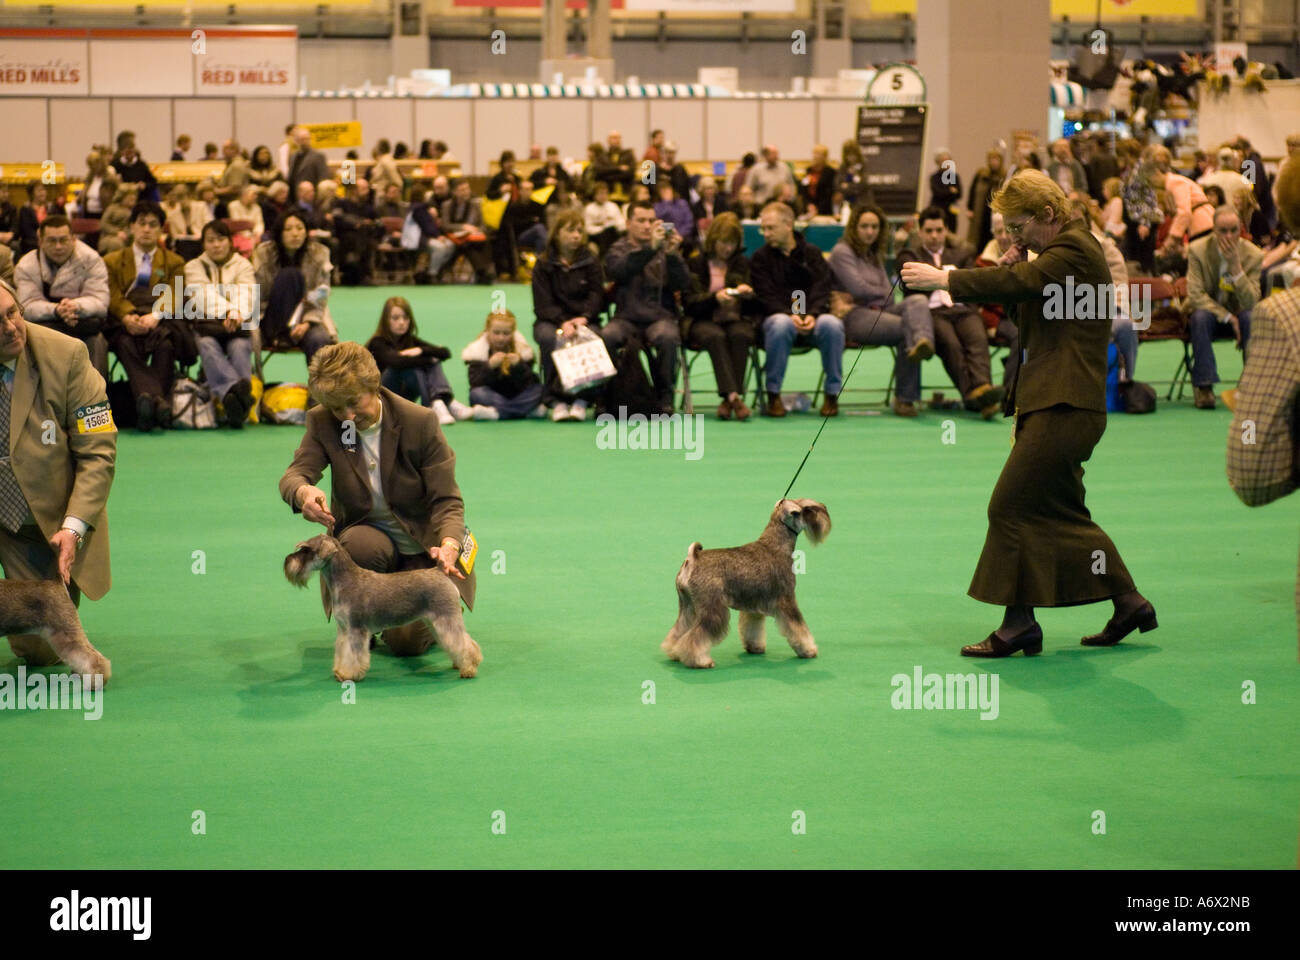 Judging of the Miniature Schnauzer dog breed at Crufts - Stock Image